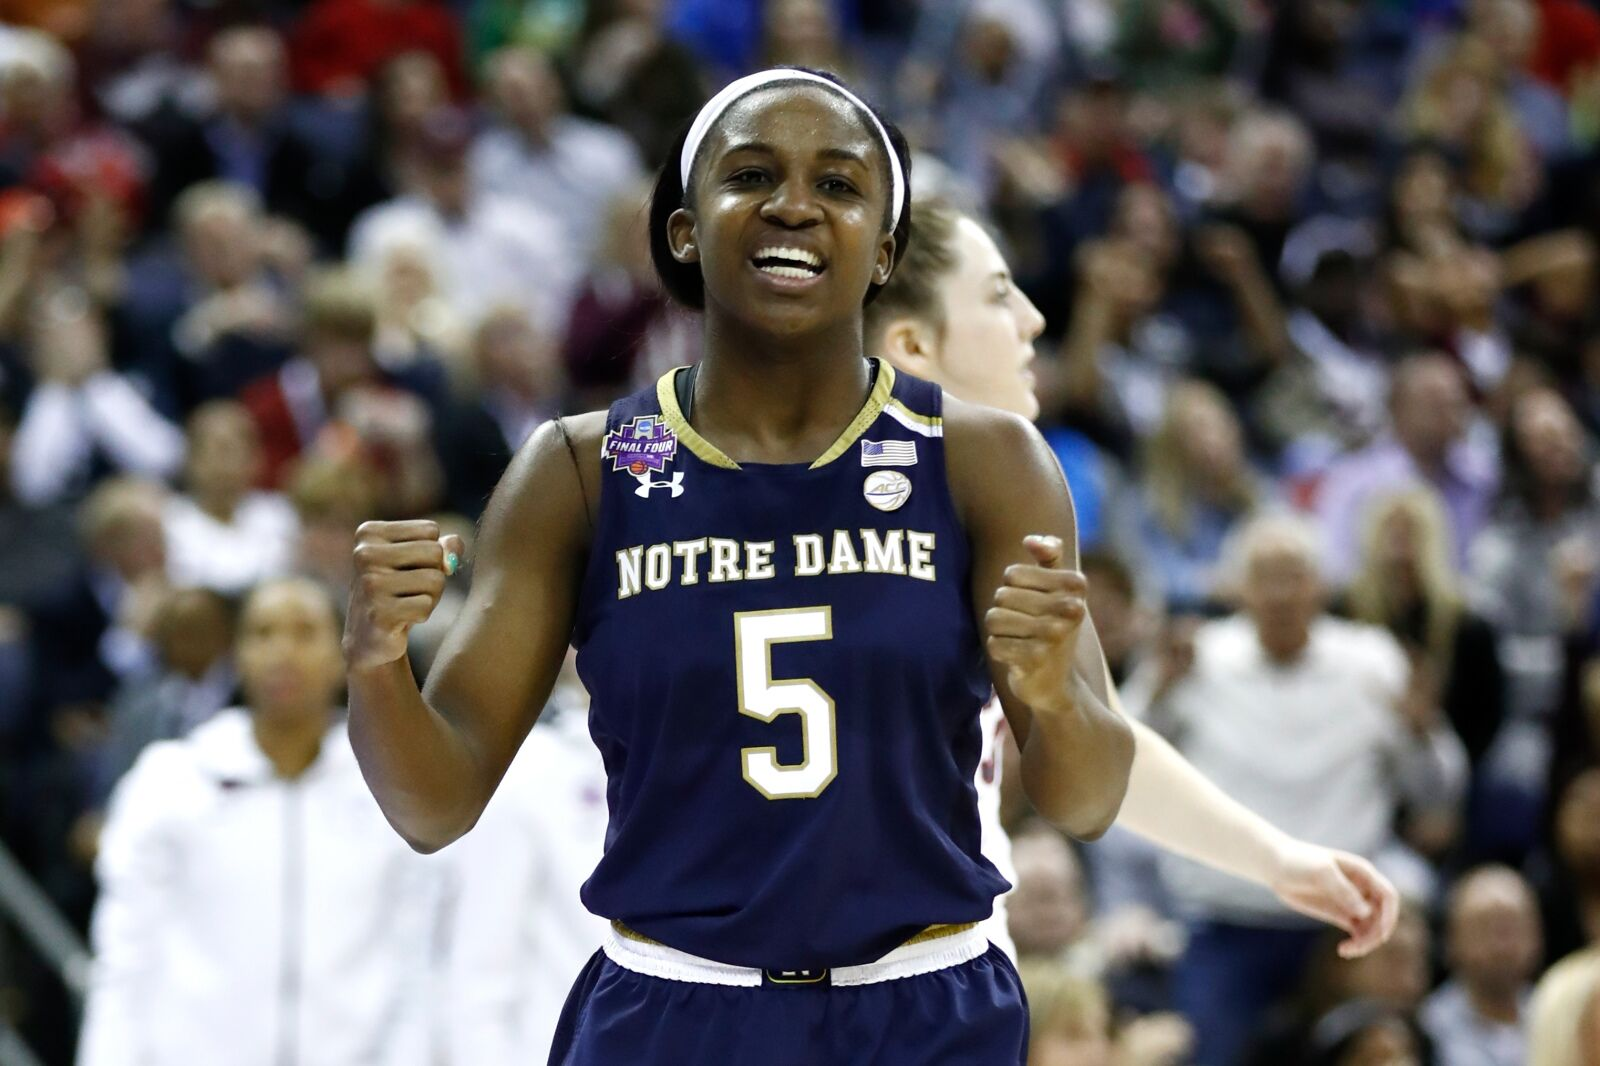 Notre Dame Women's Basketball: Irish travel to NC State for Big Monday